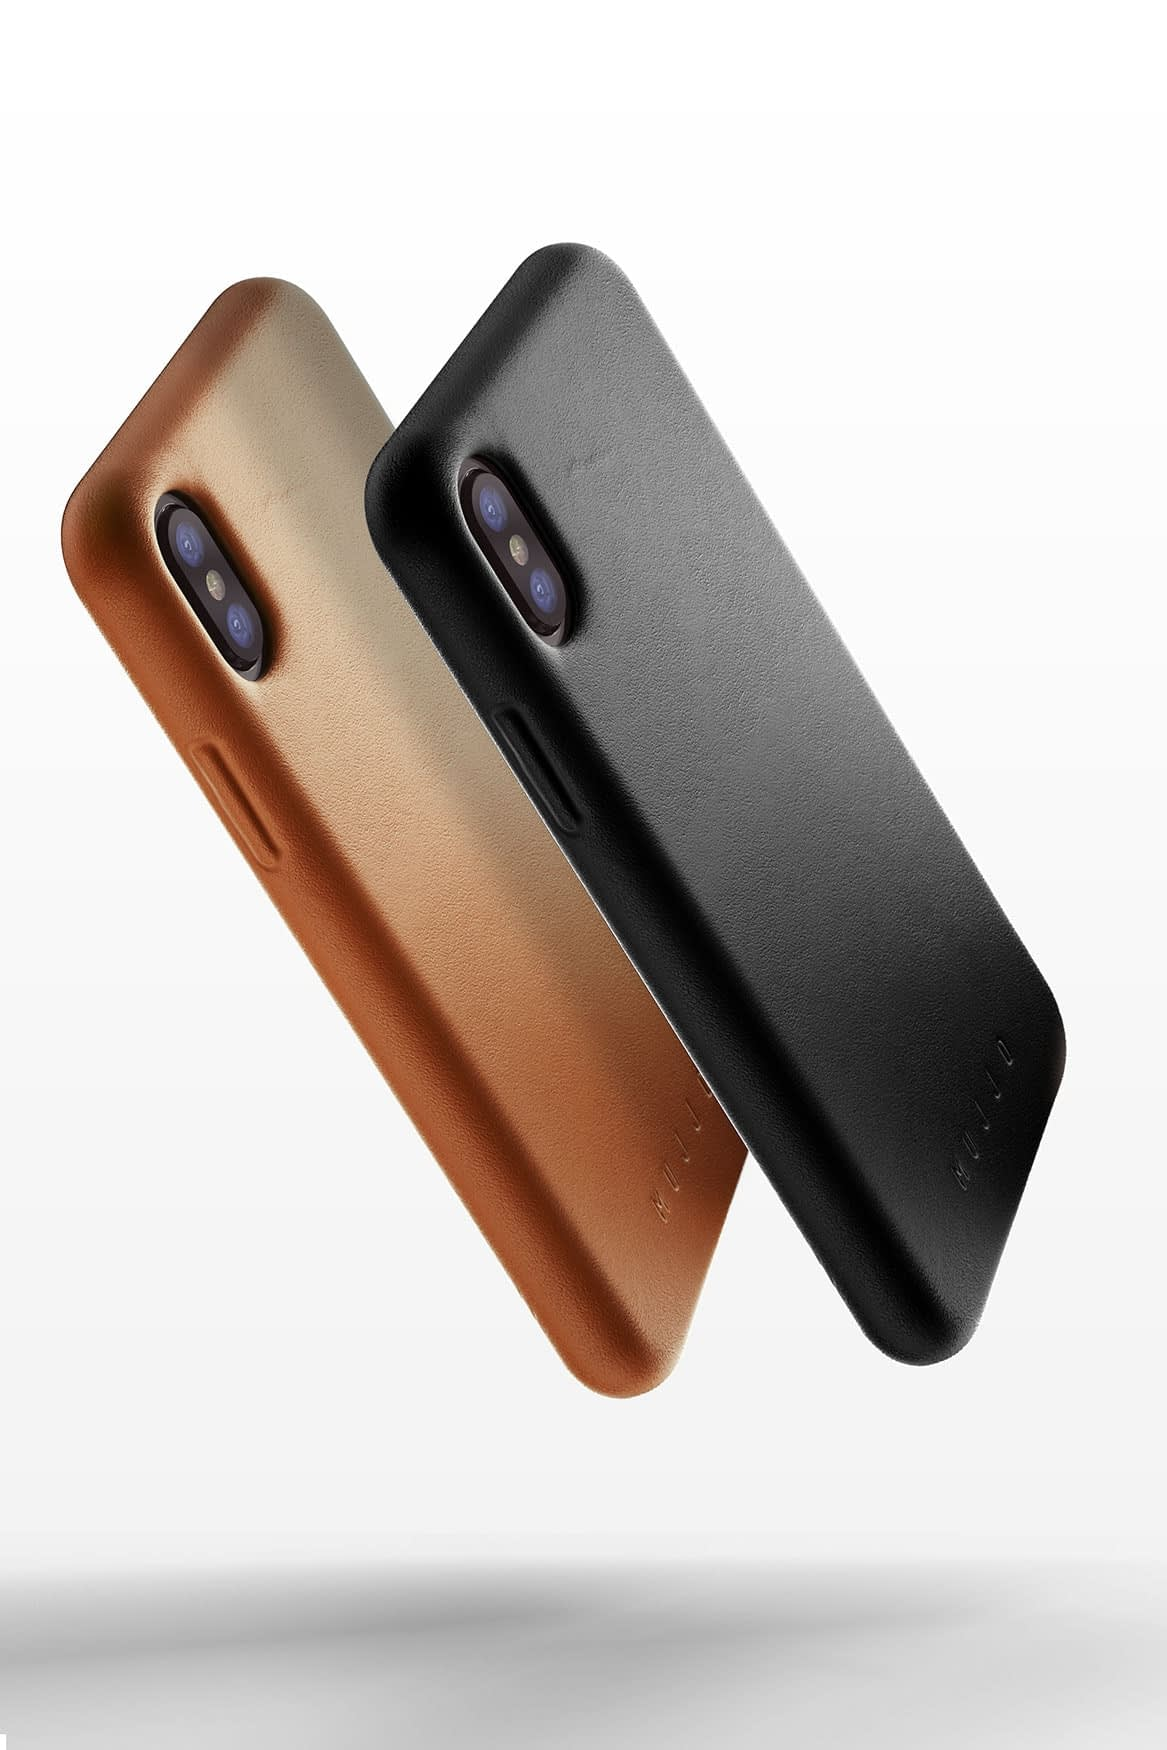 Full leather case for iPhone X Black Line up 03